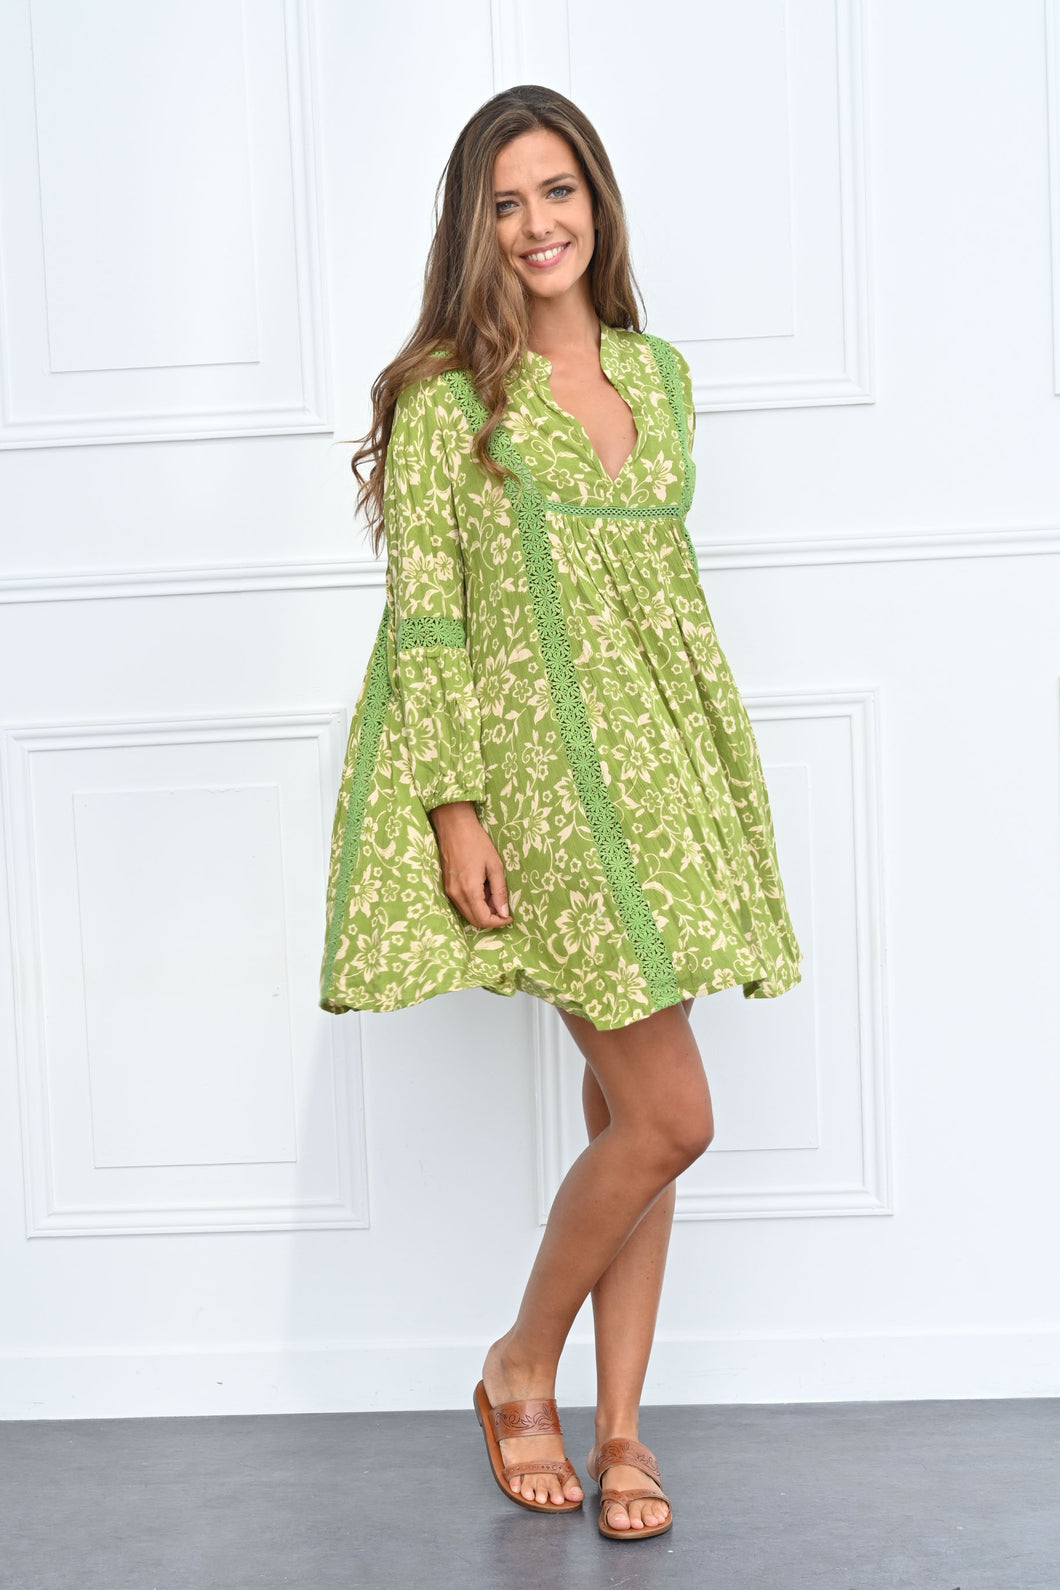 Chico Soleil Anna Dress